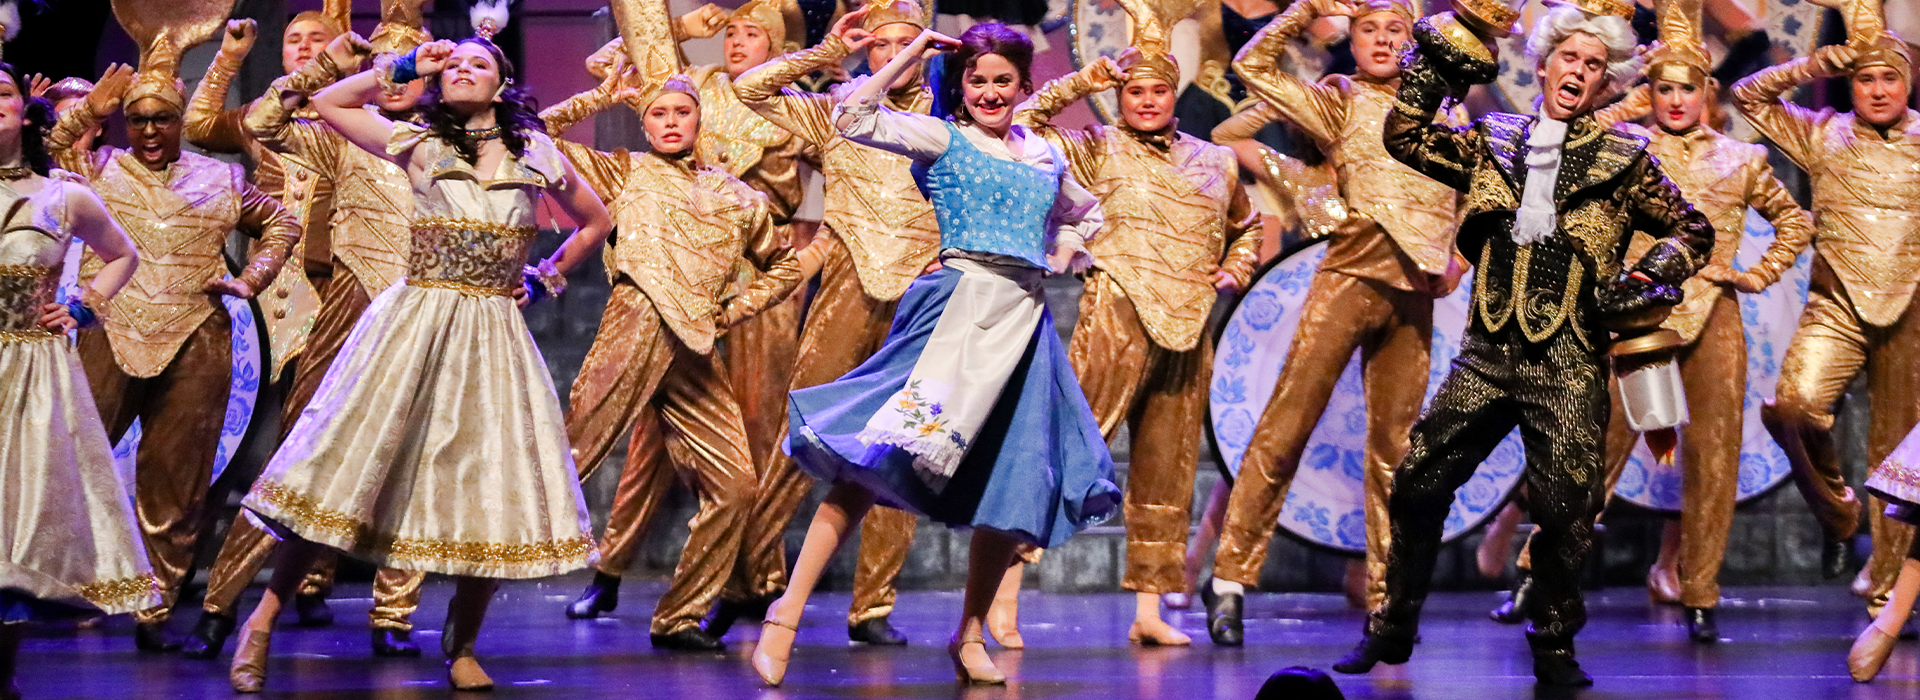 The cast performing a number from the Beauty and the Beast production